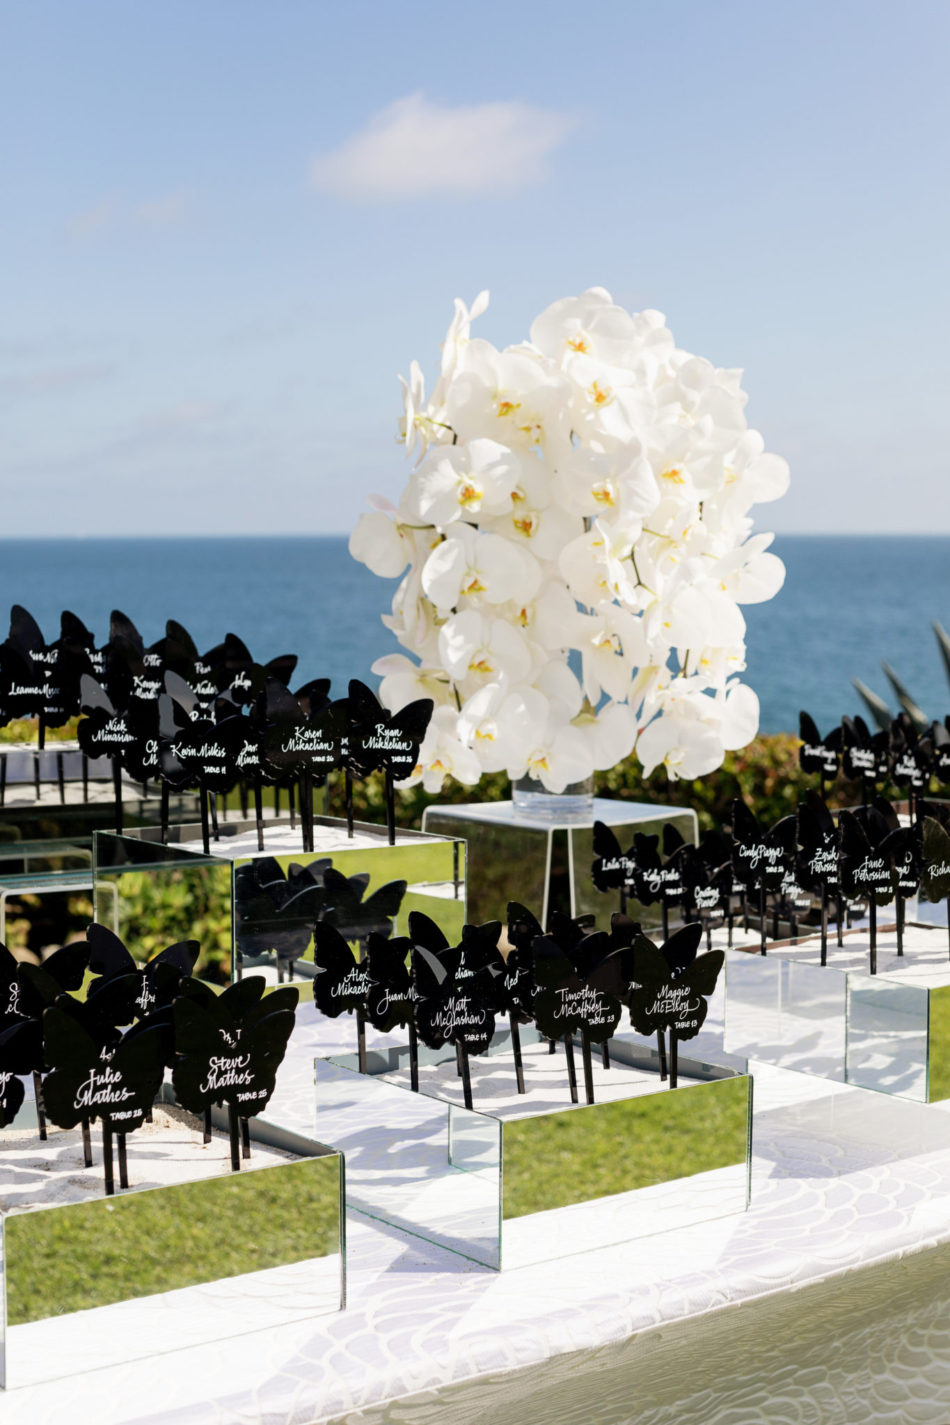 escort cards, wedding escort cards, lavish oceanfront wedding, floral design, florist, wedding florist, event florist, wedding flowers, event flowers, cabo san lucas weddings, cabo san lucas wedding florist, cabo san lucas florist, cabo san lucas floral design, cabo rentals, flowers and events